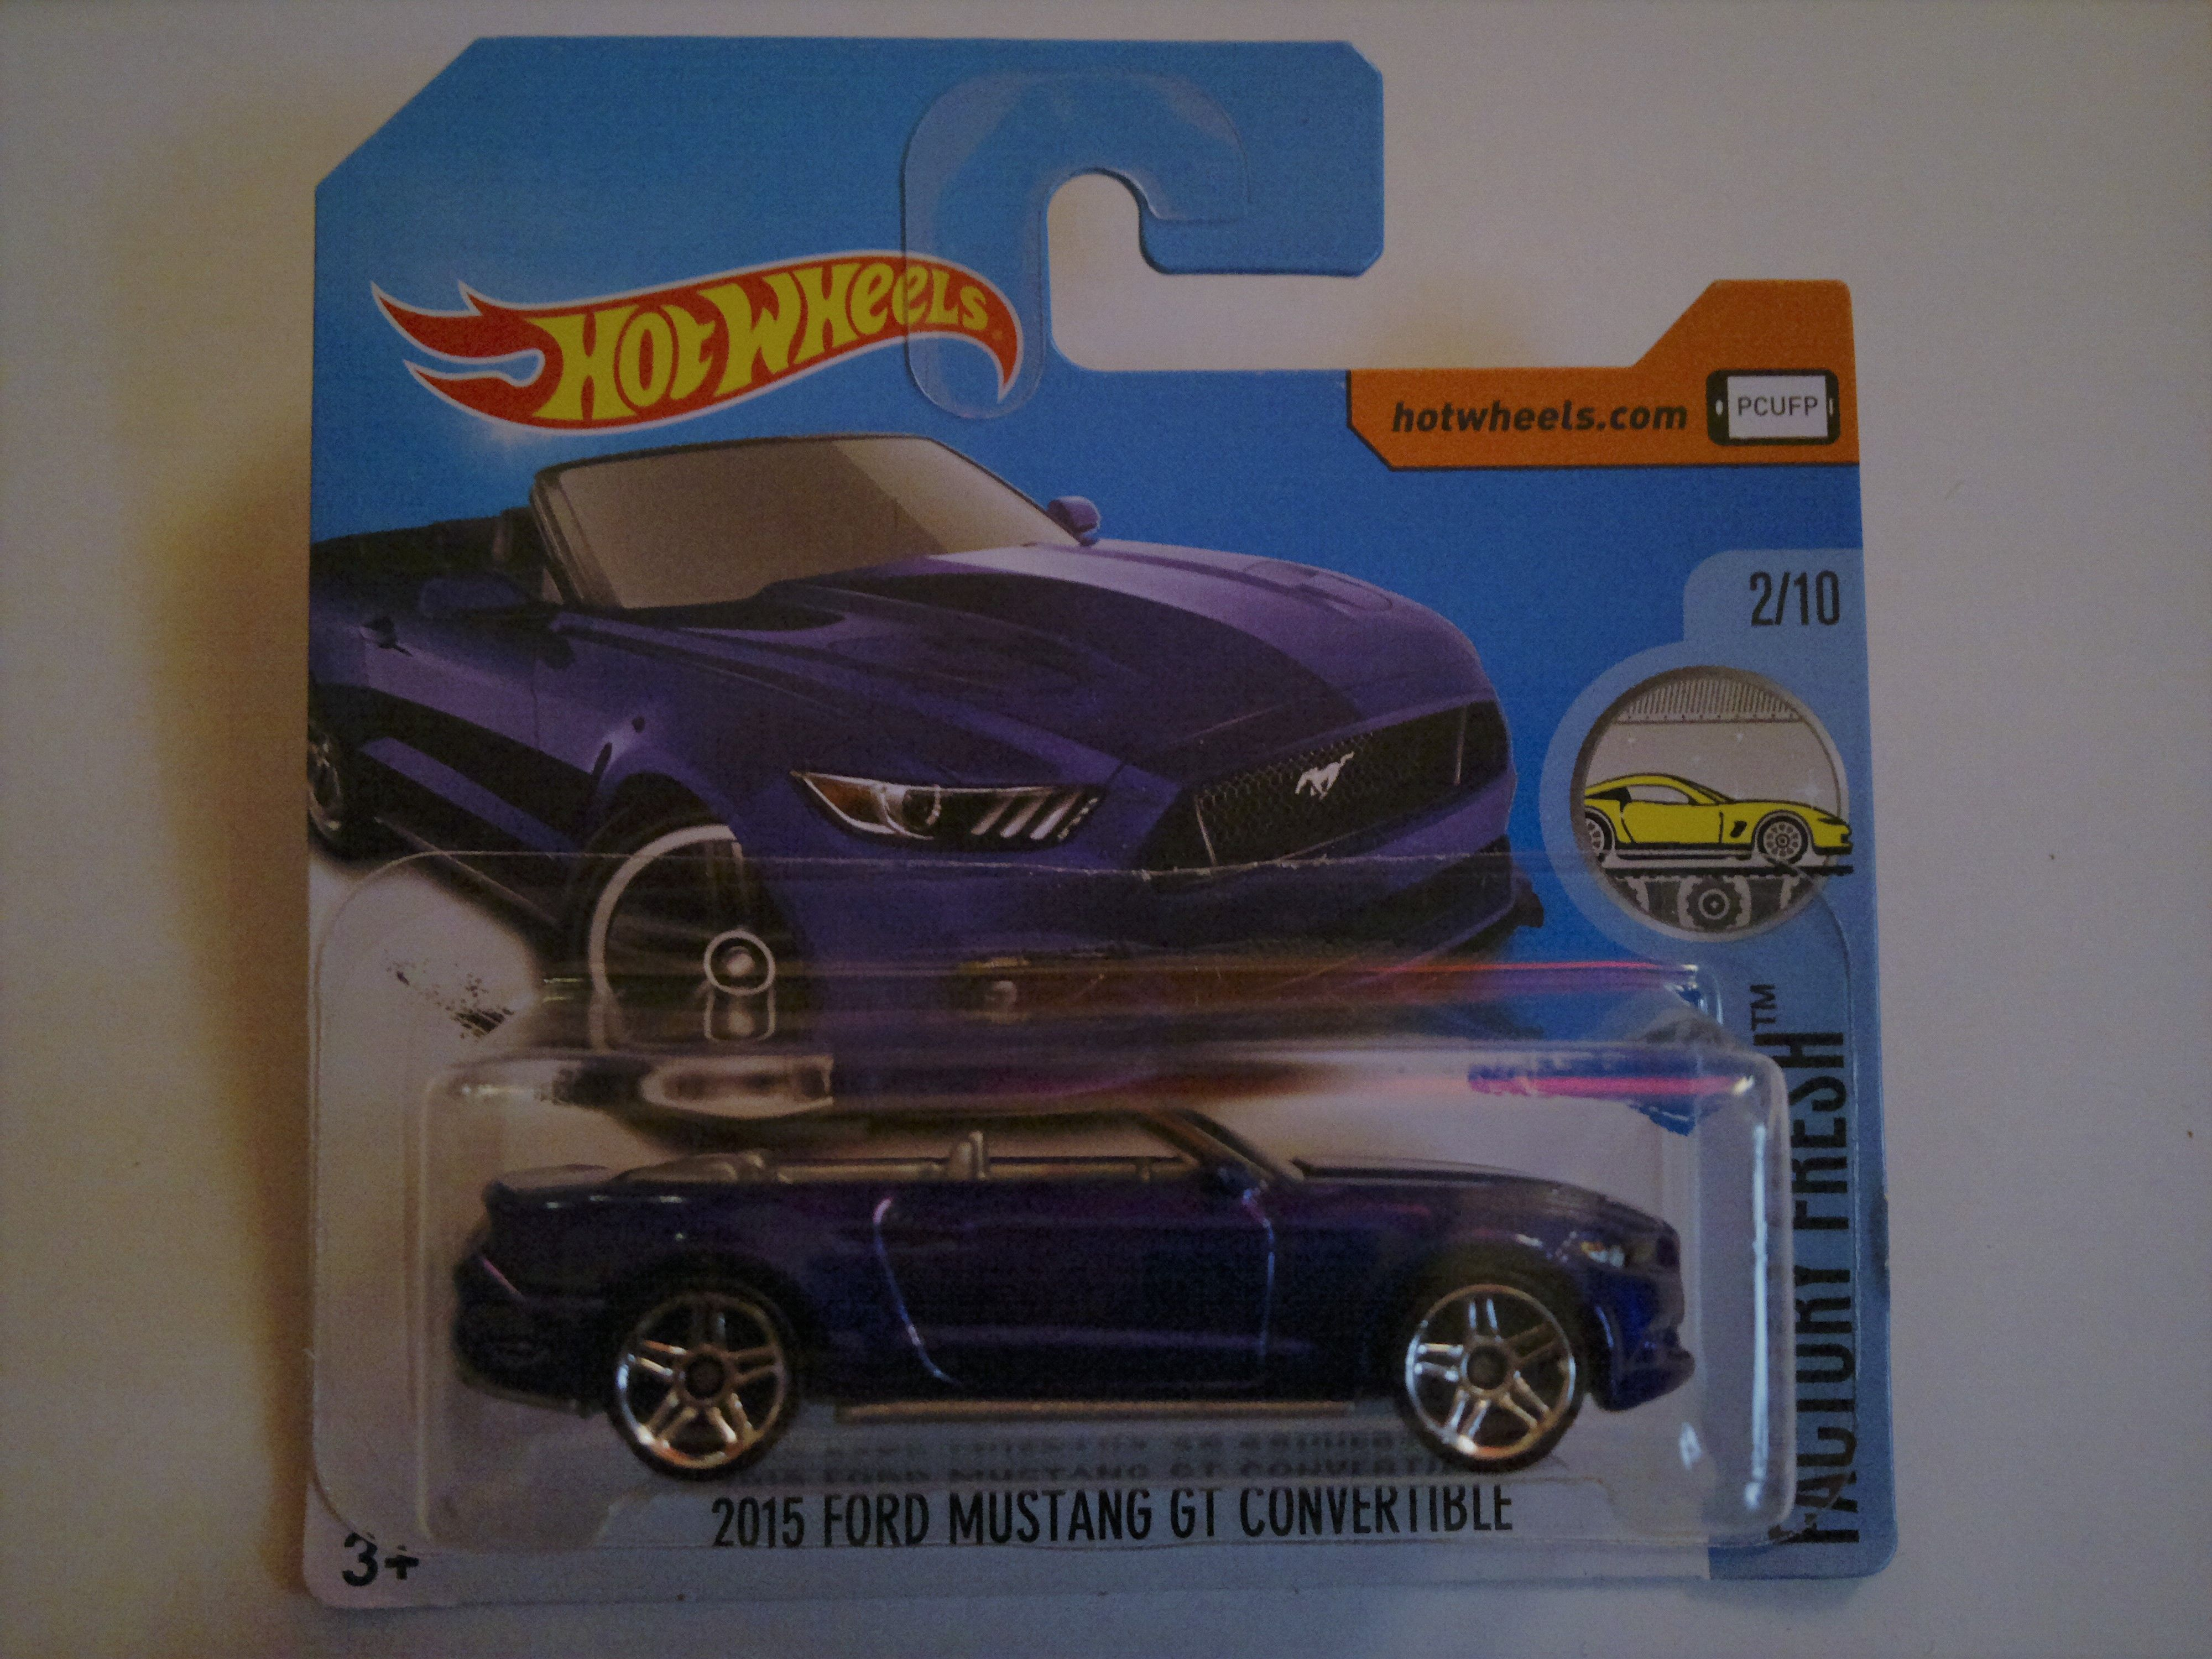 2017 ford mustang 2015 gt convertible hot wheels